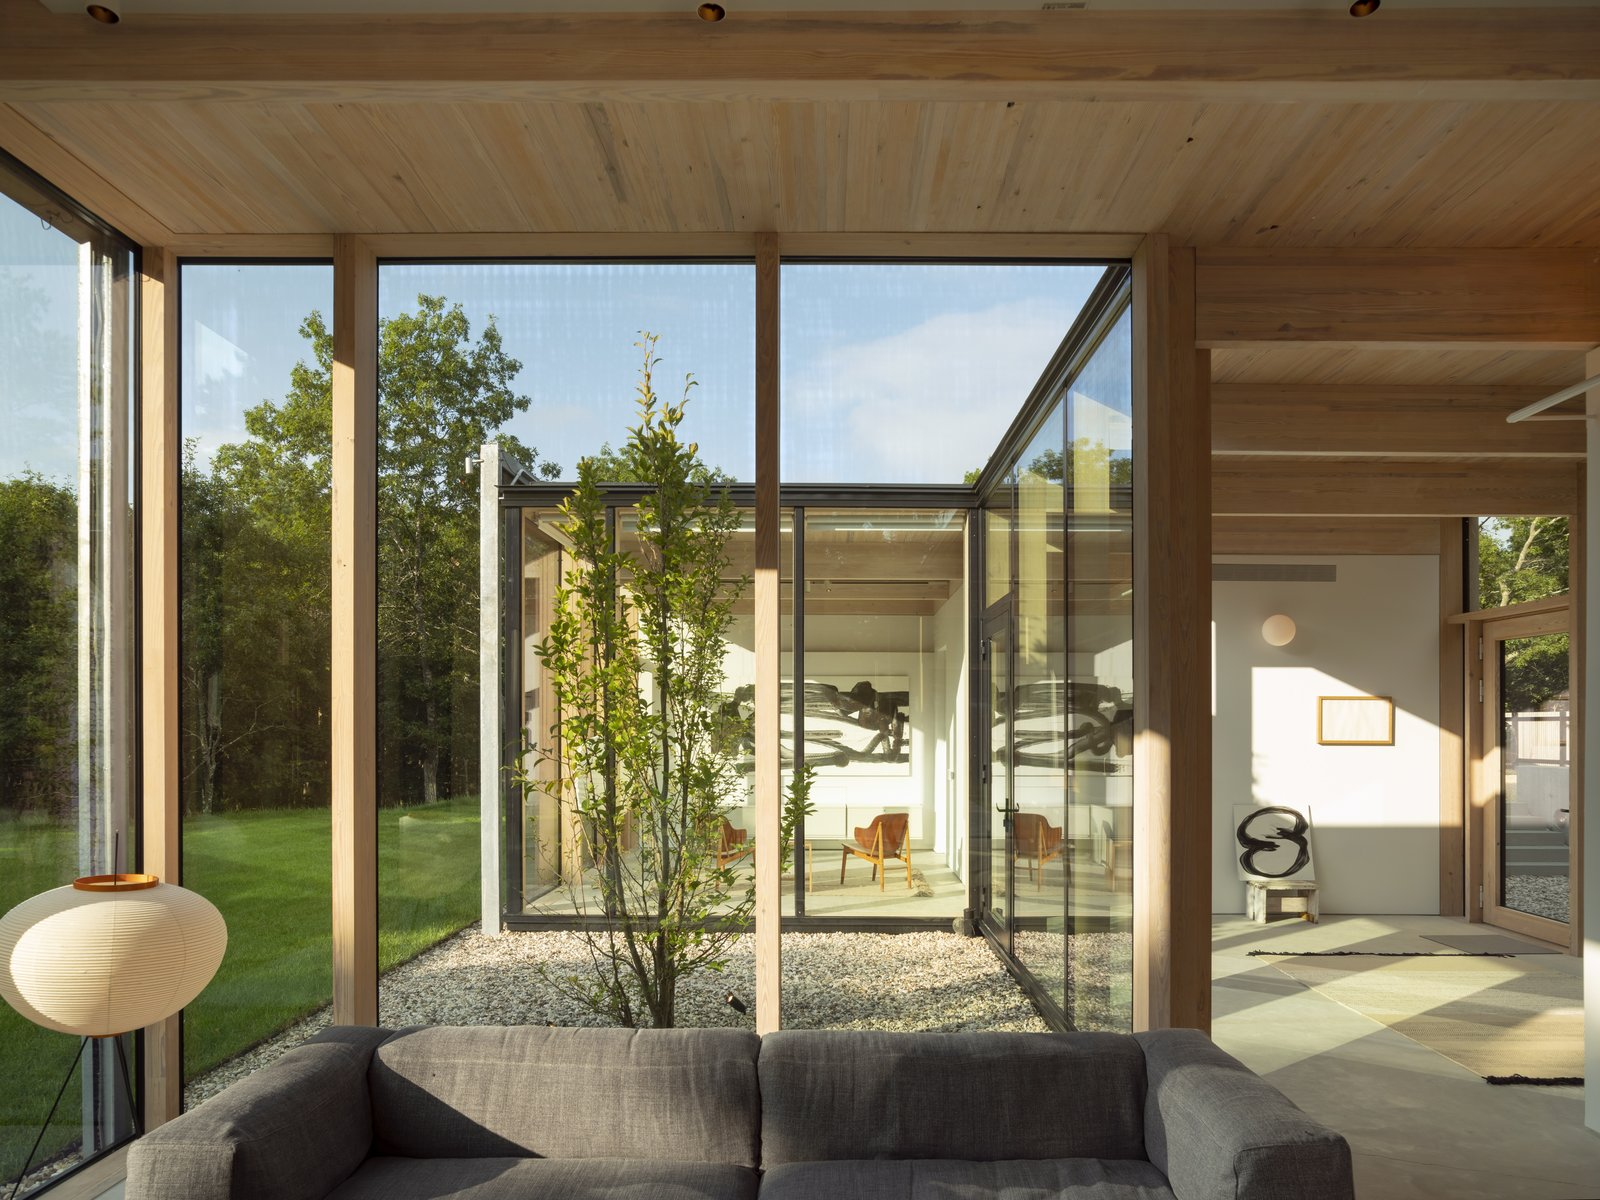 Living, Concrete, and Sofa Clad in textured timber, the interior ceilings allow the structural material to speak for itself, while also providing a warm contrast to the minimal design.  Best Living Photos from An Energy-Efficient Glass House in East Hampton Shifts With the Seasons